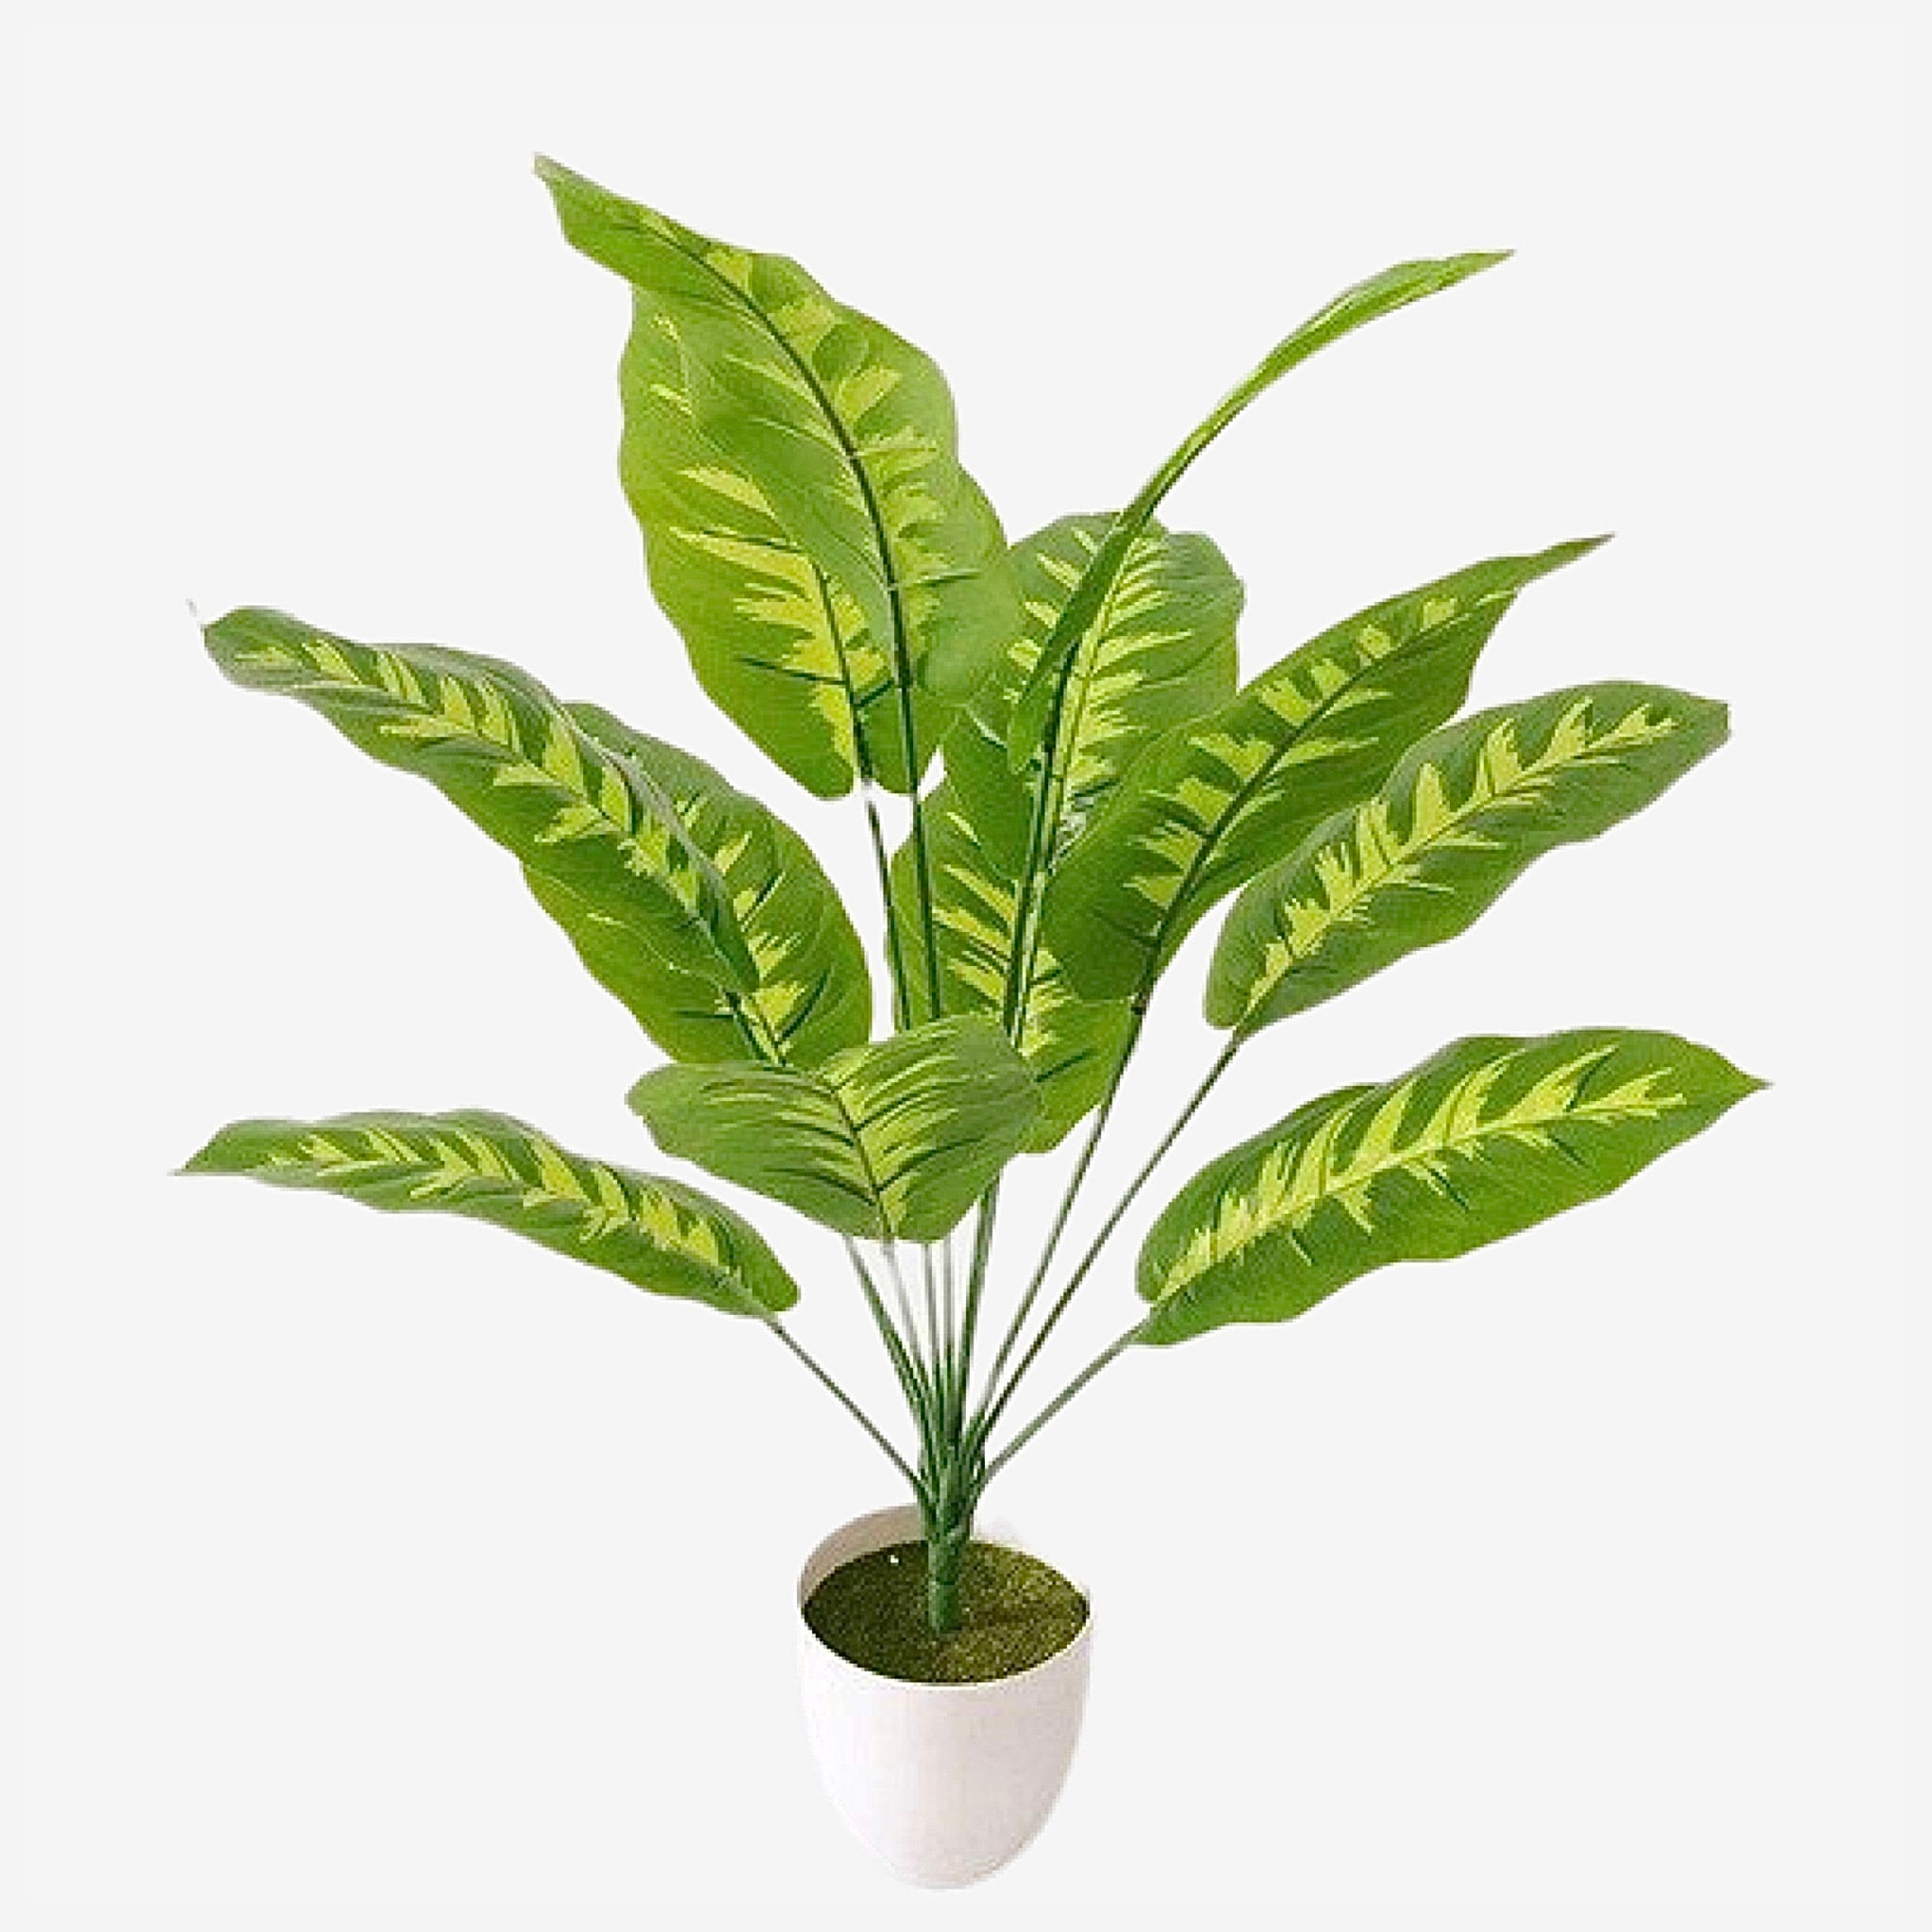 Artificial Palm Tree Branch    66cm 12 Head Rare Plastic Plants Green Indoor Potted Balcony Garden Hotel Office Home Decor Trend